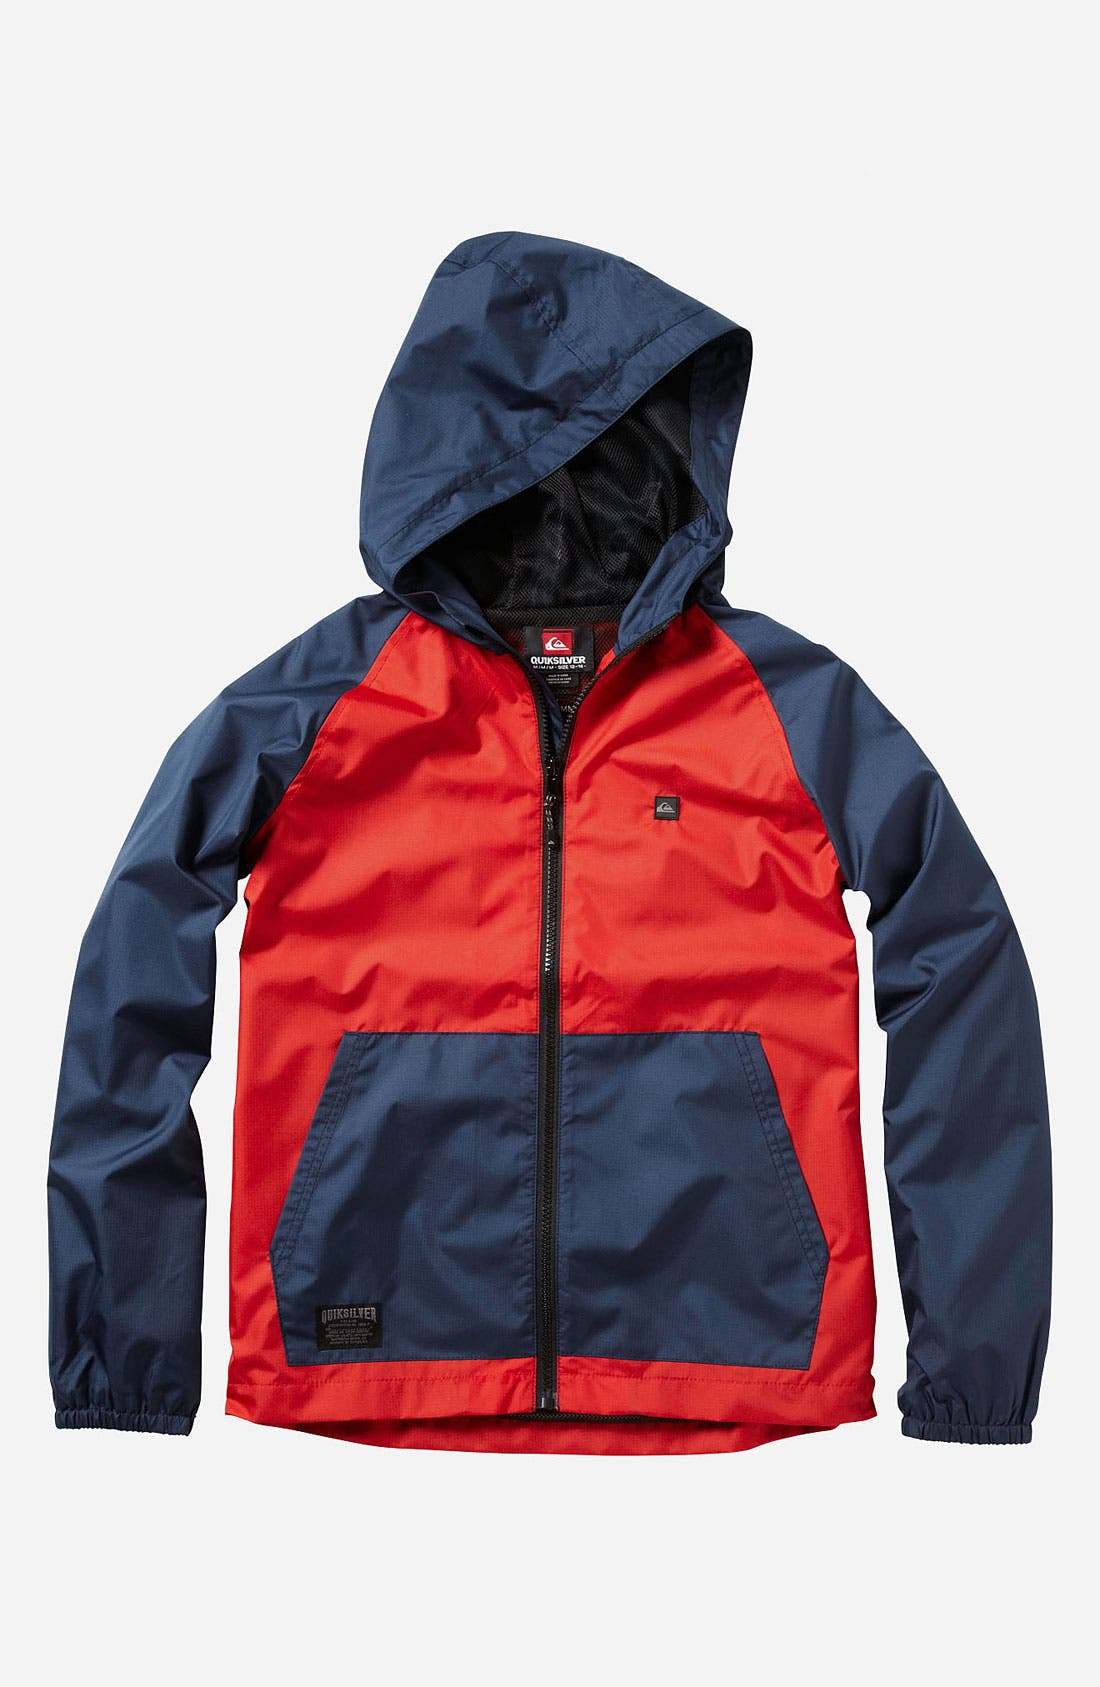 Alternate Image 1 Selected - Quiksilver 'Ward' Jacket (Big Boys)